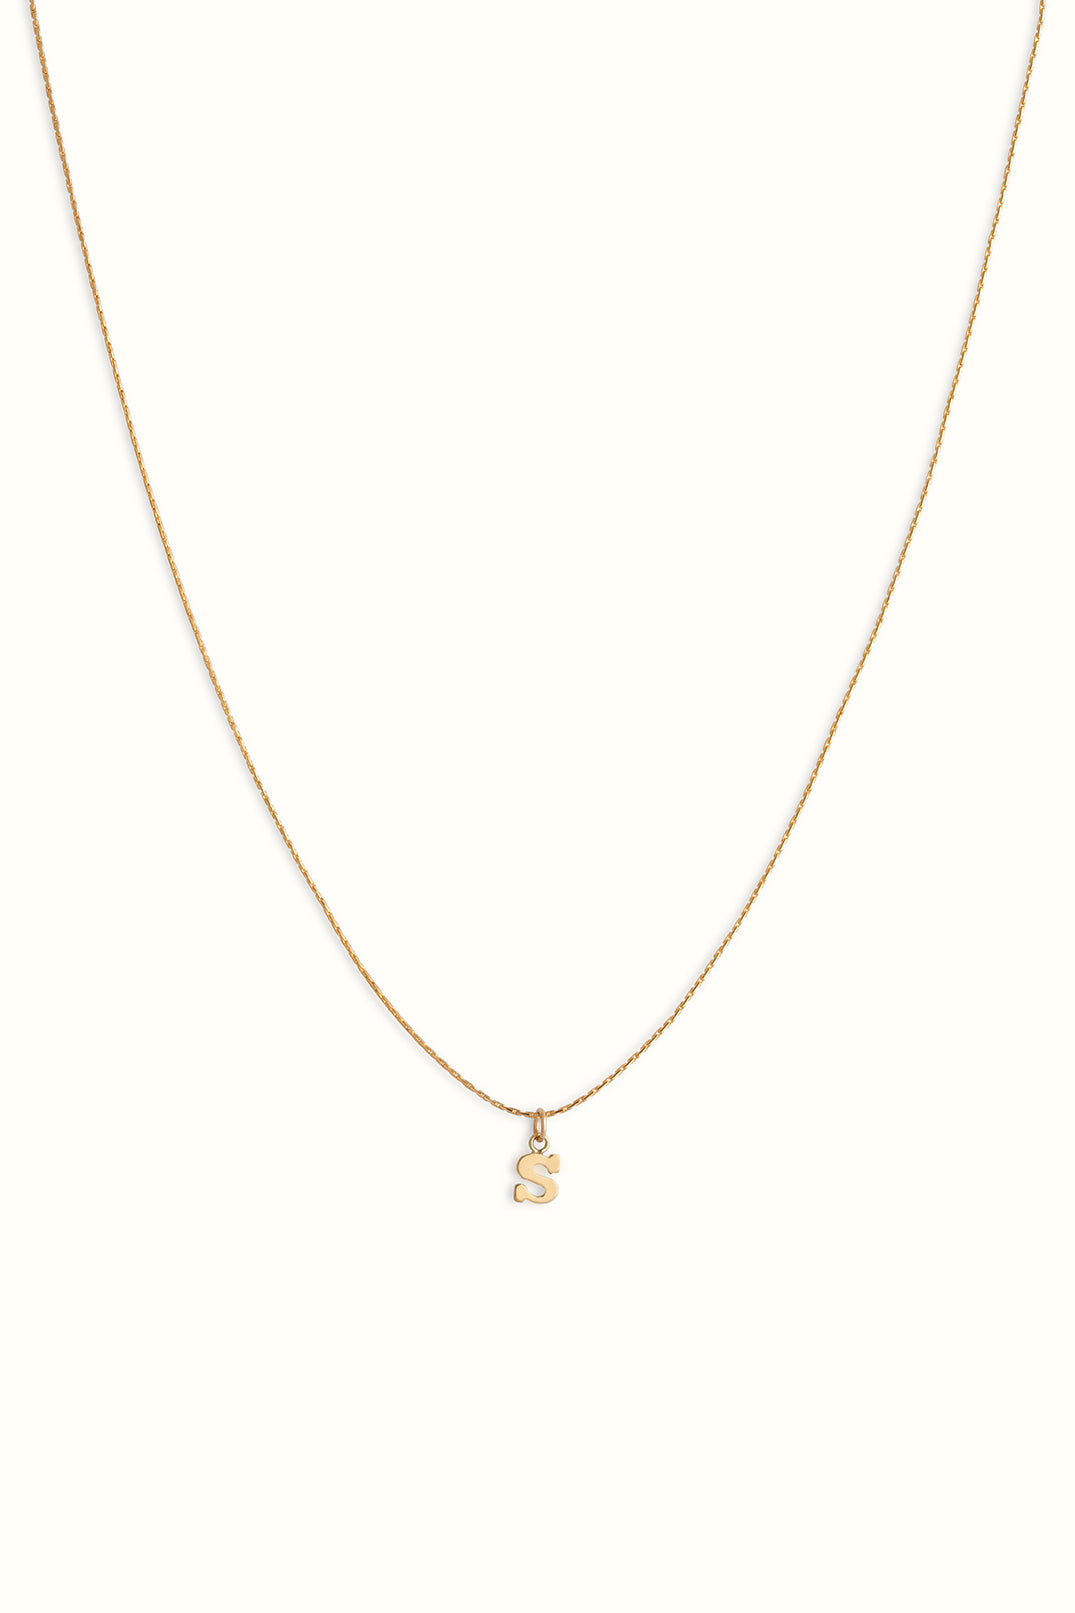 fine gold filled cordette snake necklace with an initial pendant letter S charm